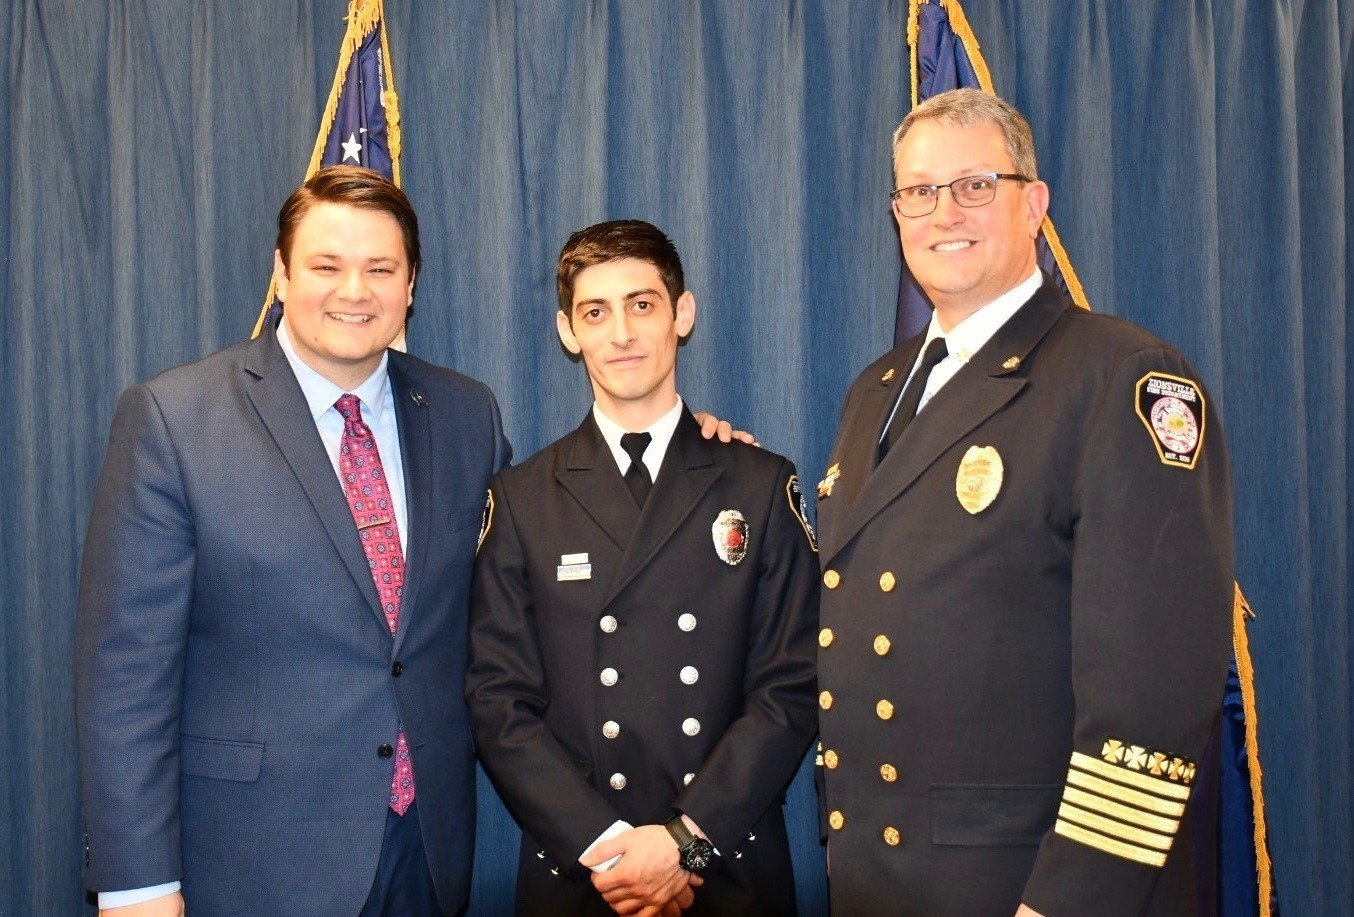 Sen. J.D. Ford presents special resolution to Zionsville Fire Department Chief James VanGorder and Firefighter Abdullakh Abamislimov